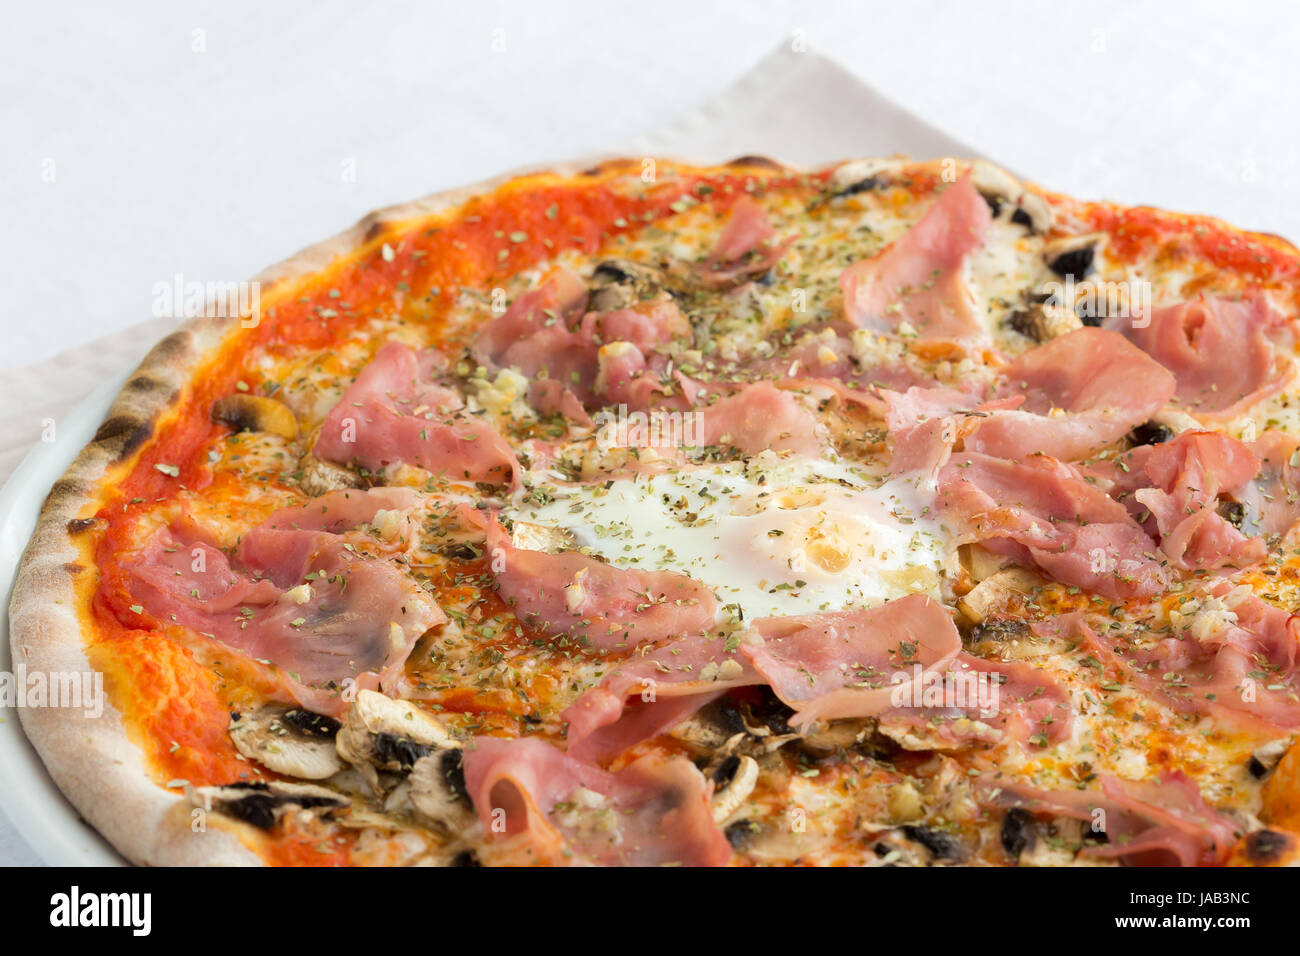 A pizza cappriciosa, its ingredients are tomatoes, mushrooms, an egg, ham and mozzarella. It is cooked on a wood - Stock Image